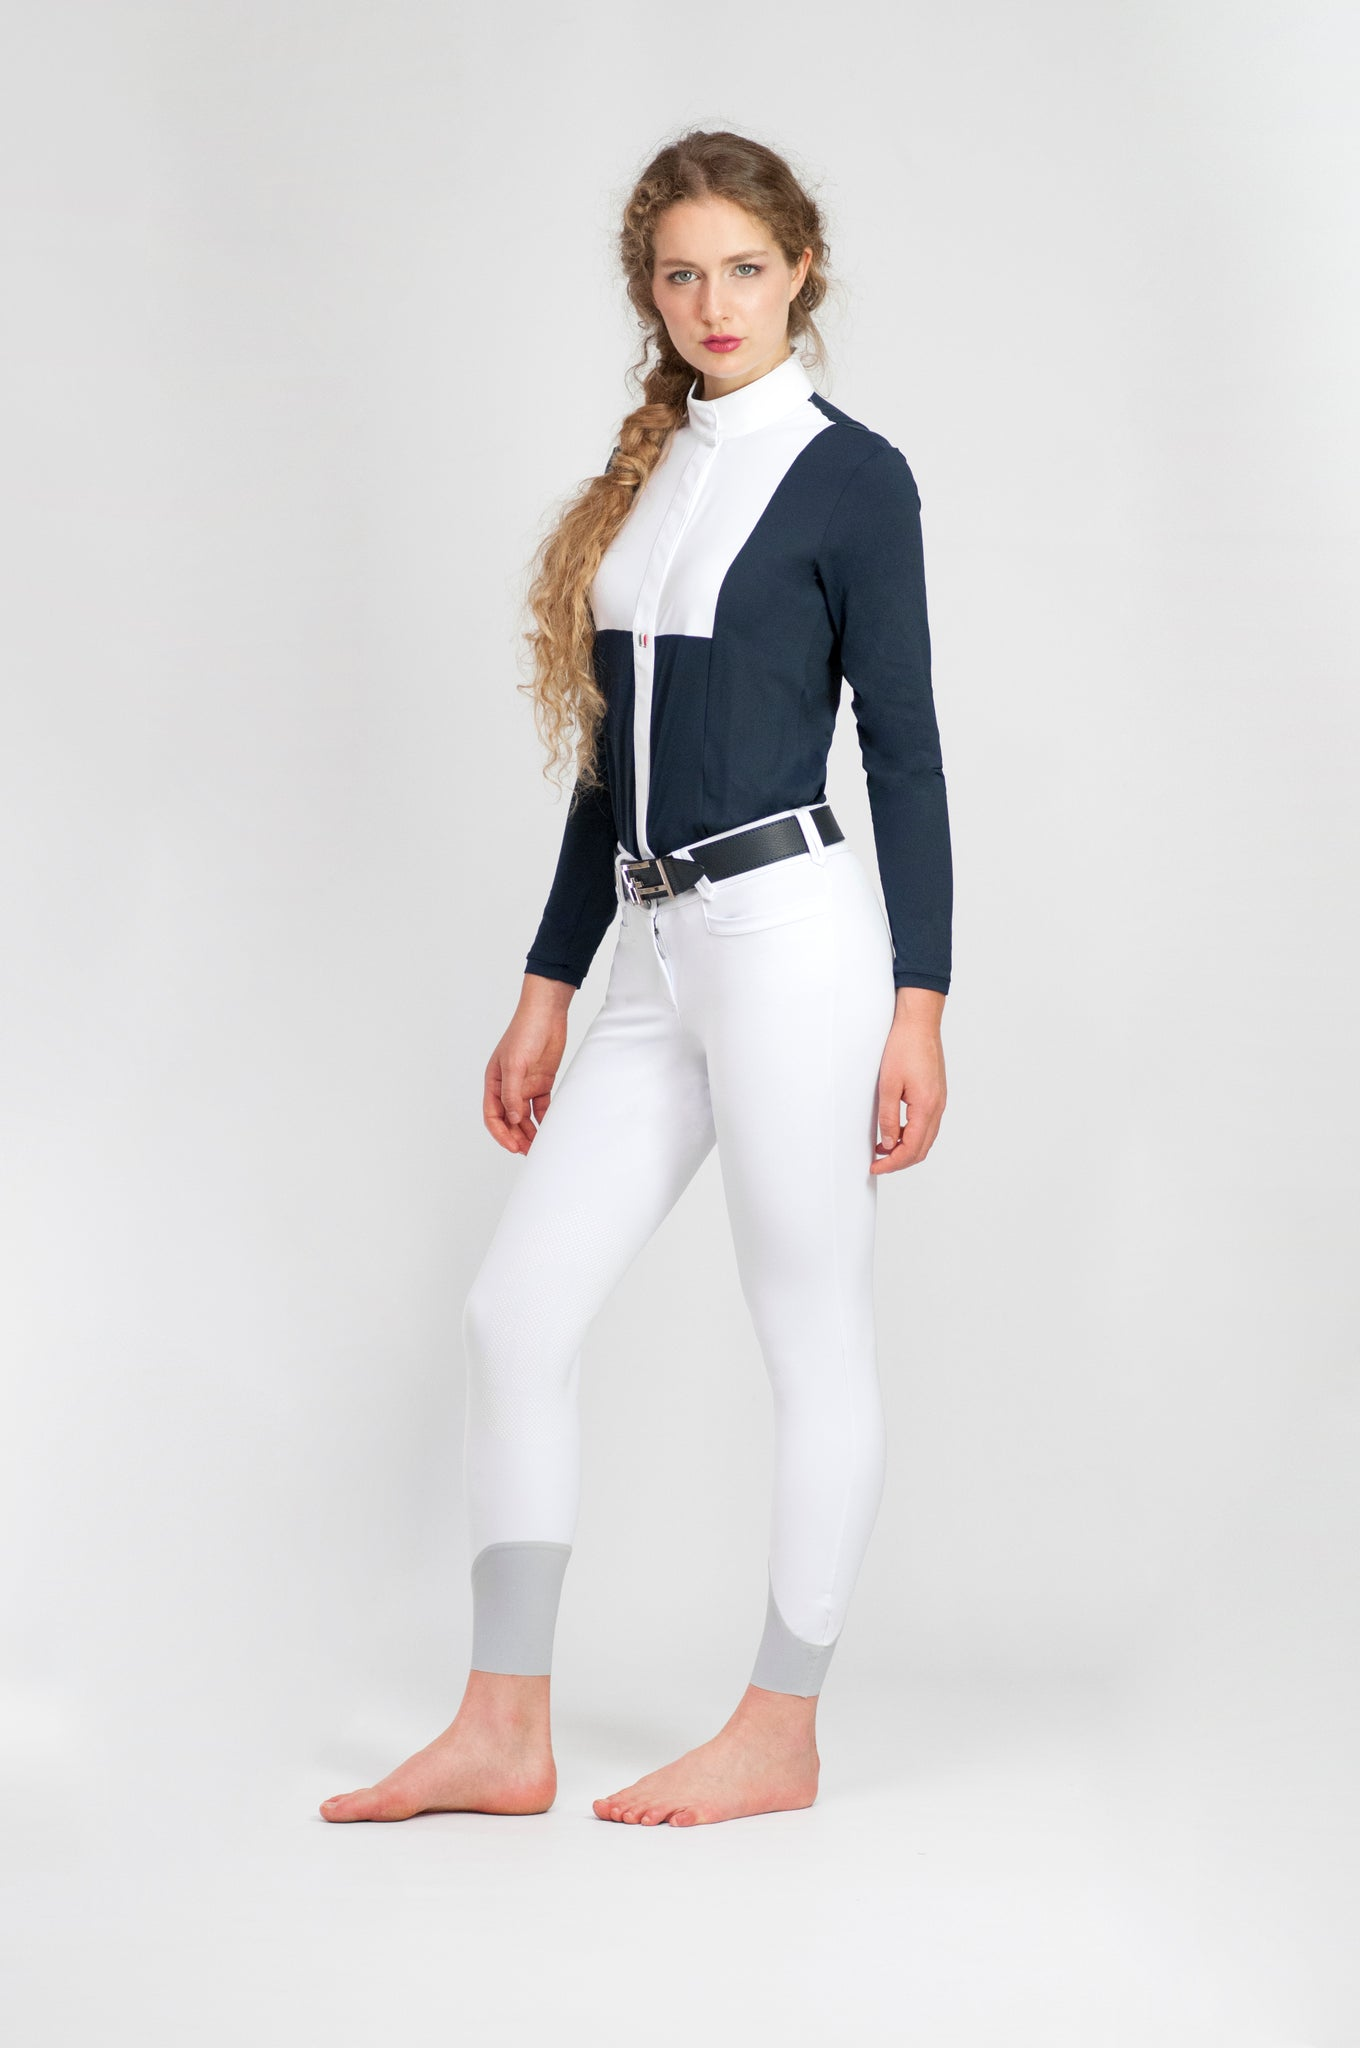 equestrian competition breeches pants